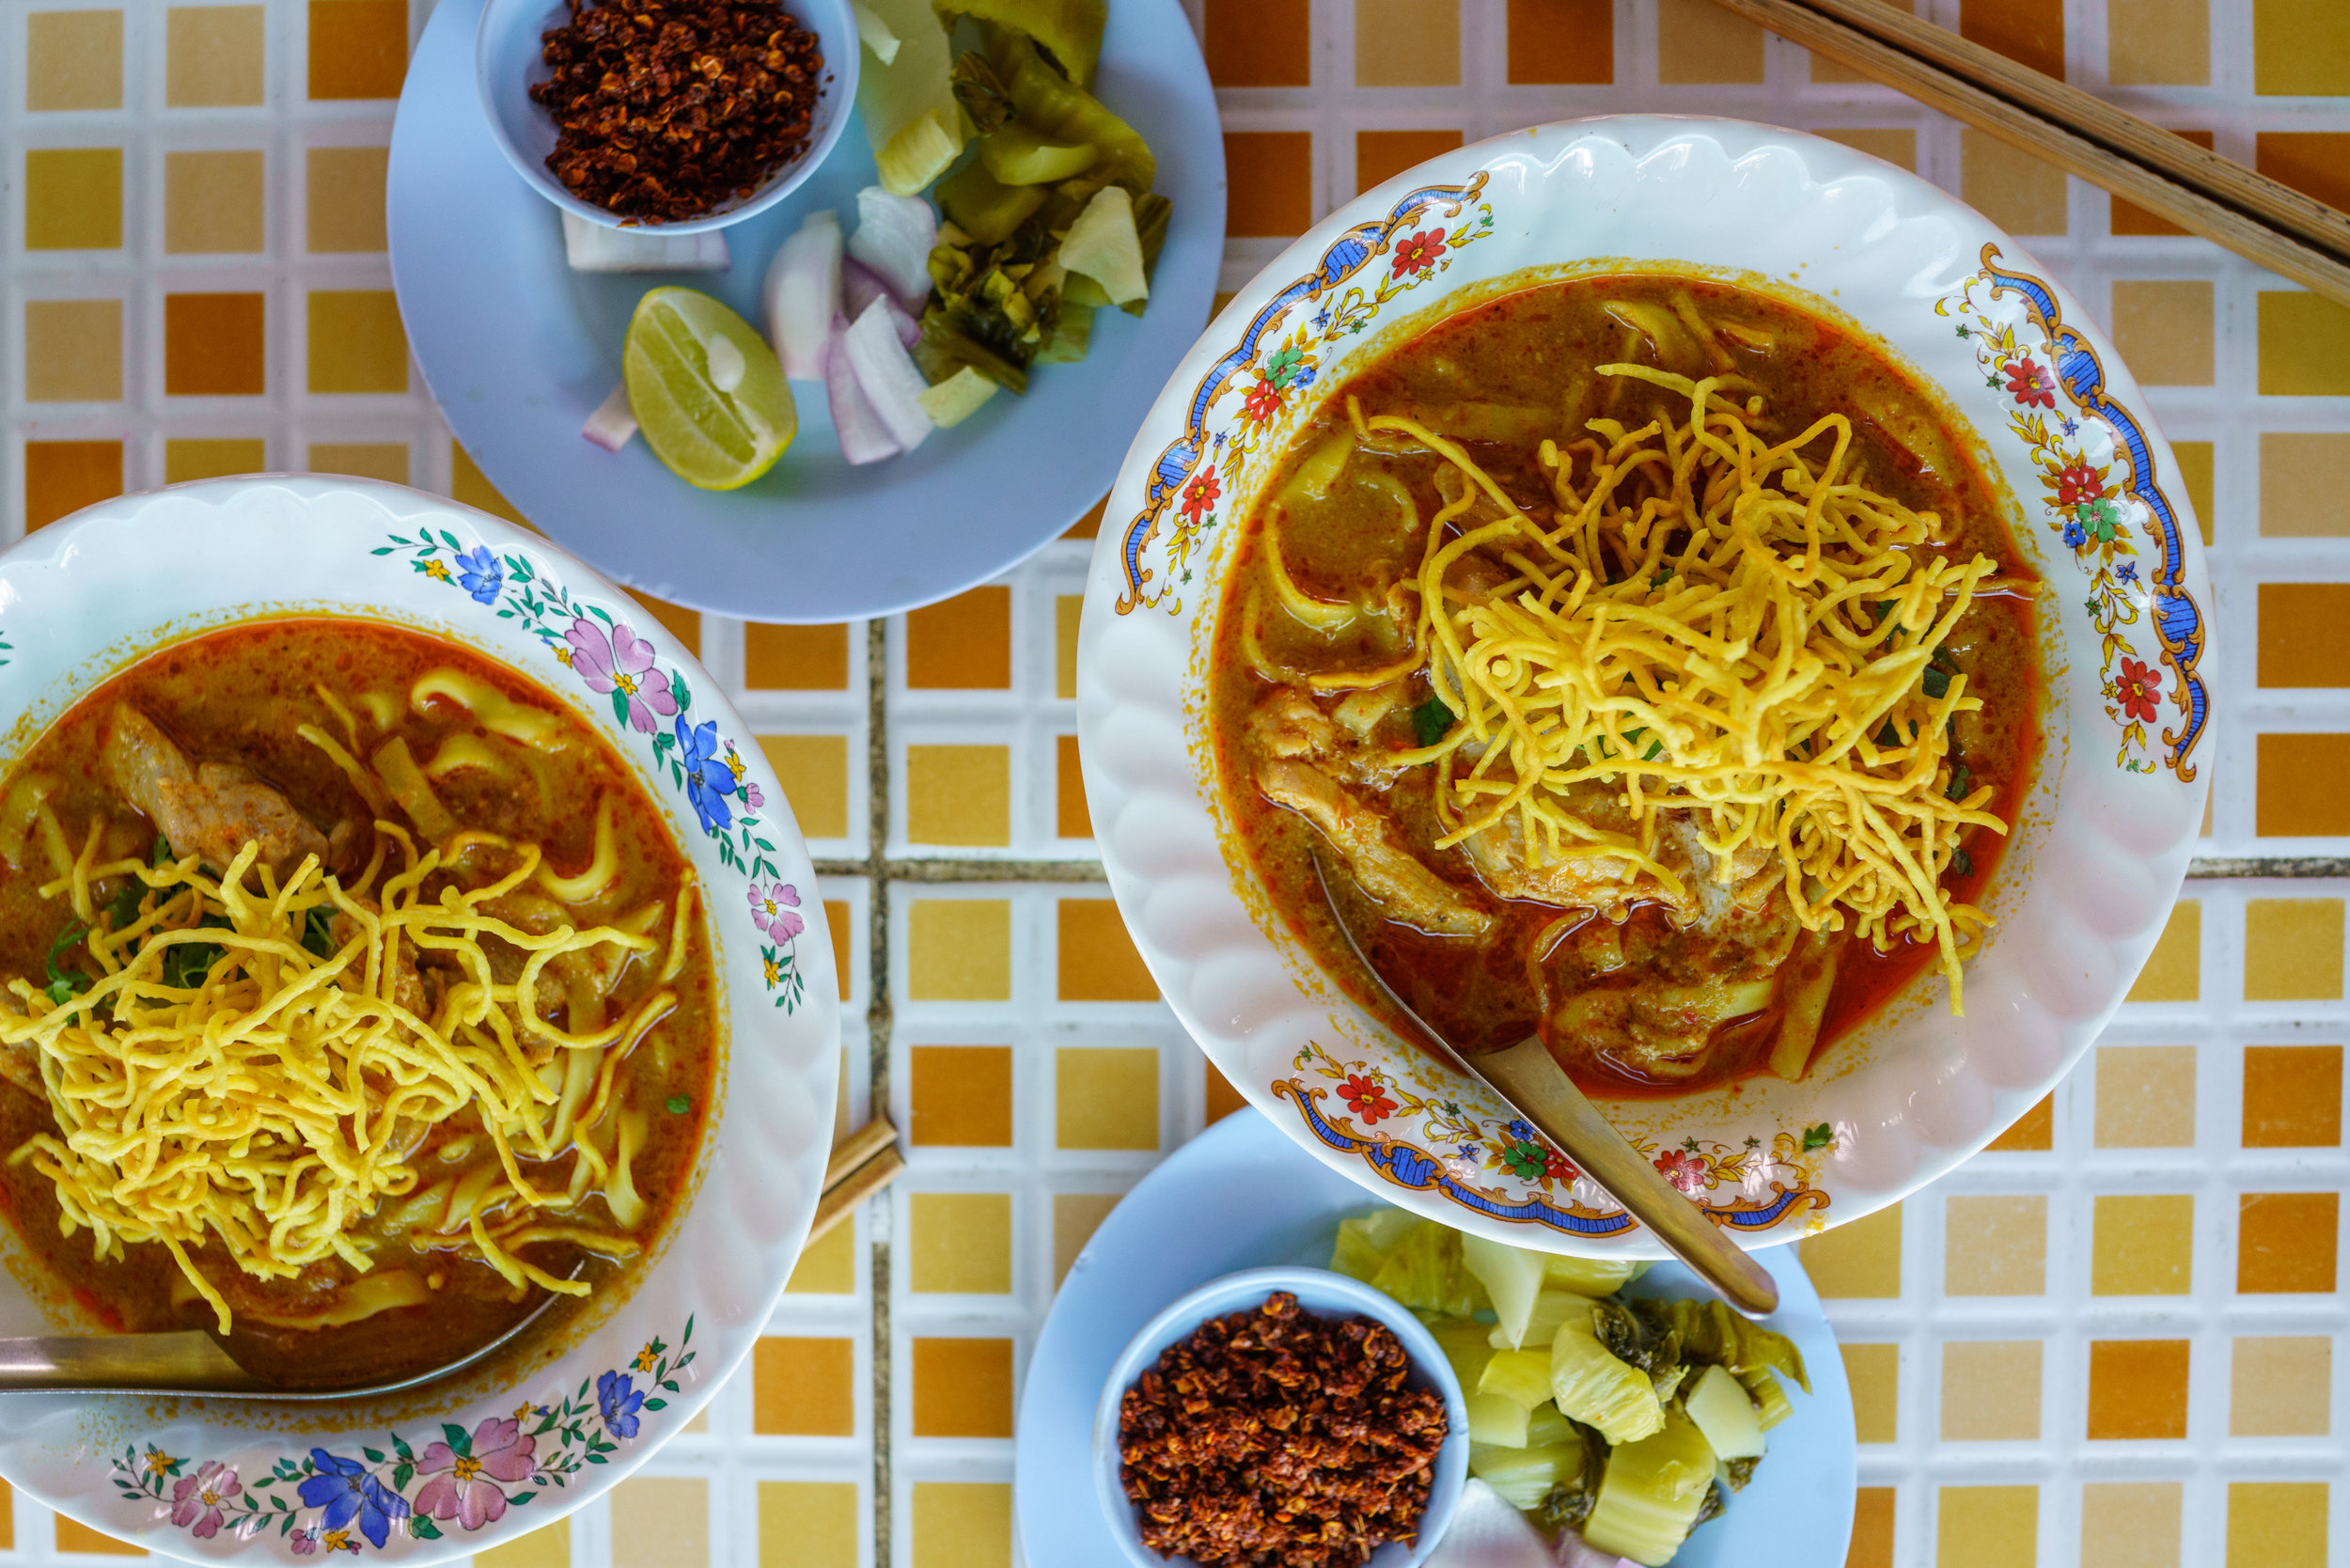 We could go for another bowl of this  khao soi at Khao Soi Khun Yai right now!